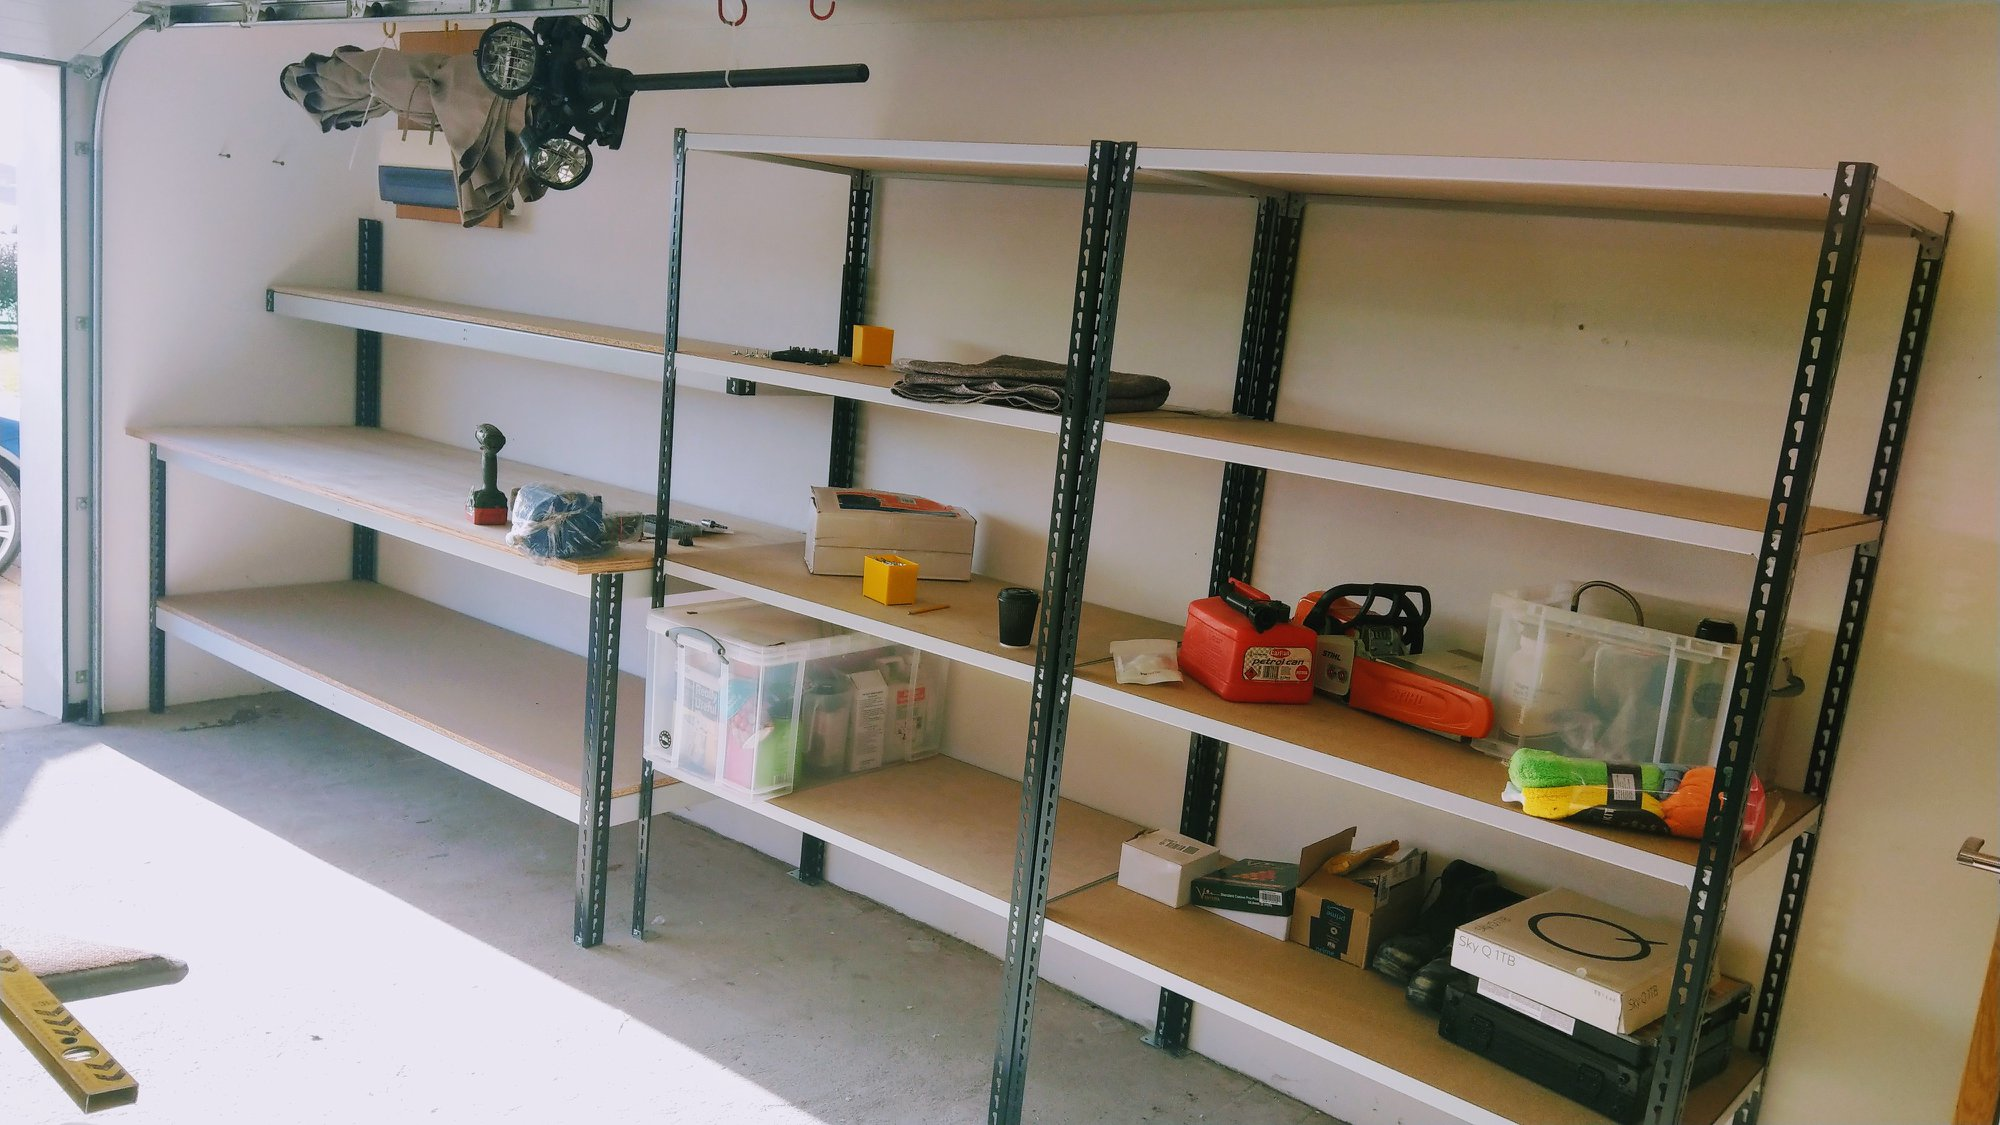 Shelving & workbench install in a customers garage